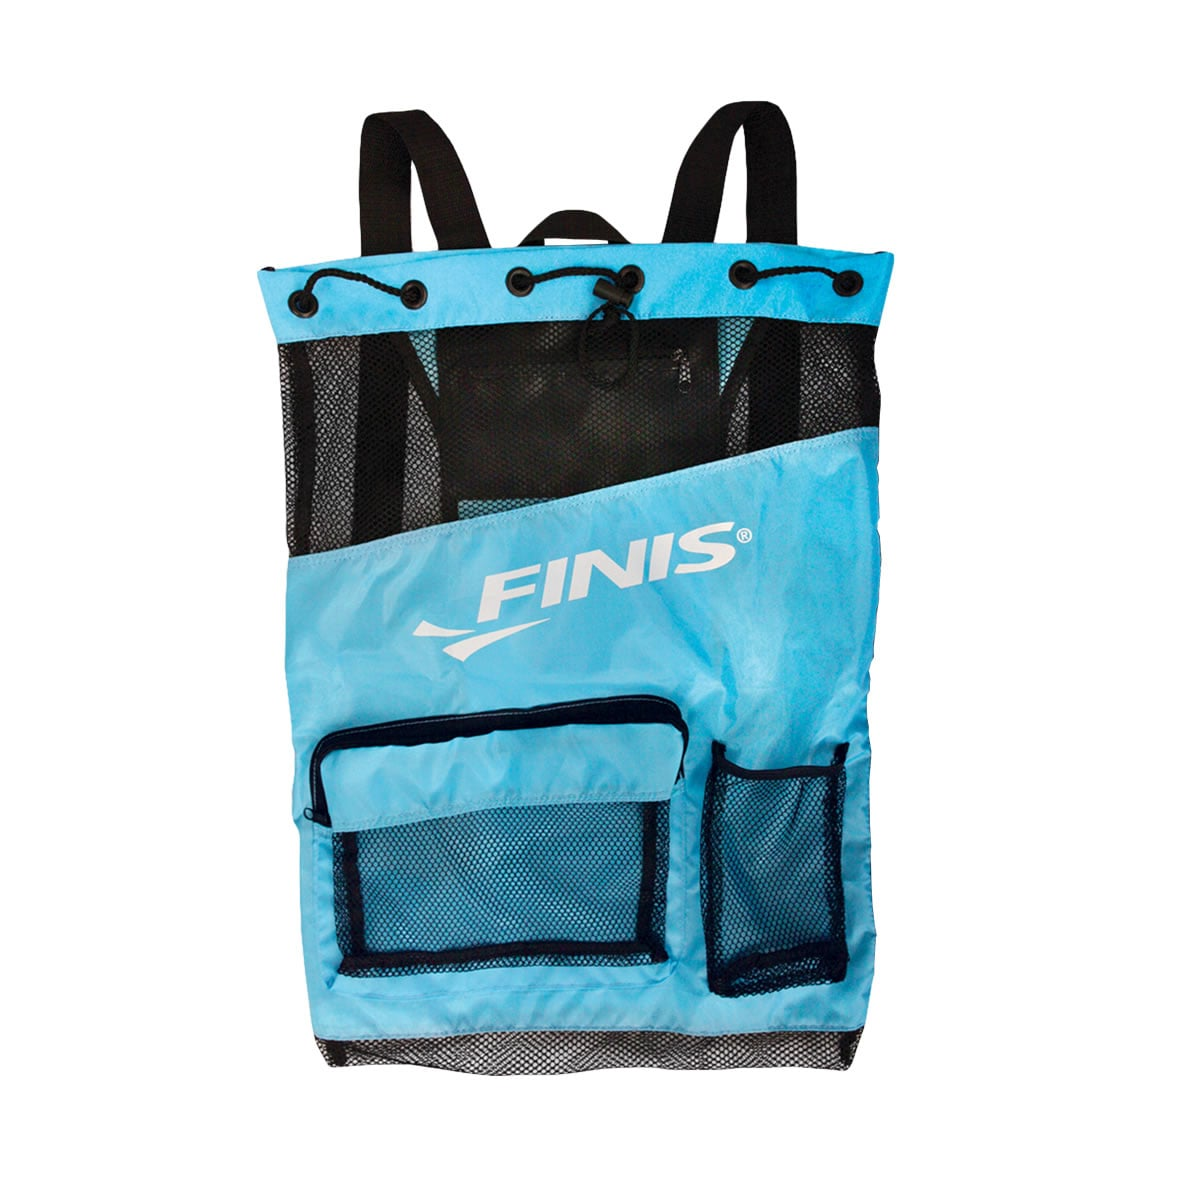 Ultra Mesh Backpack - FINIS - Fin125022